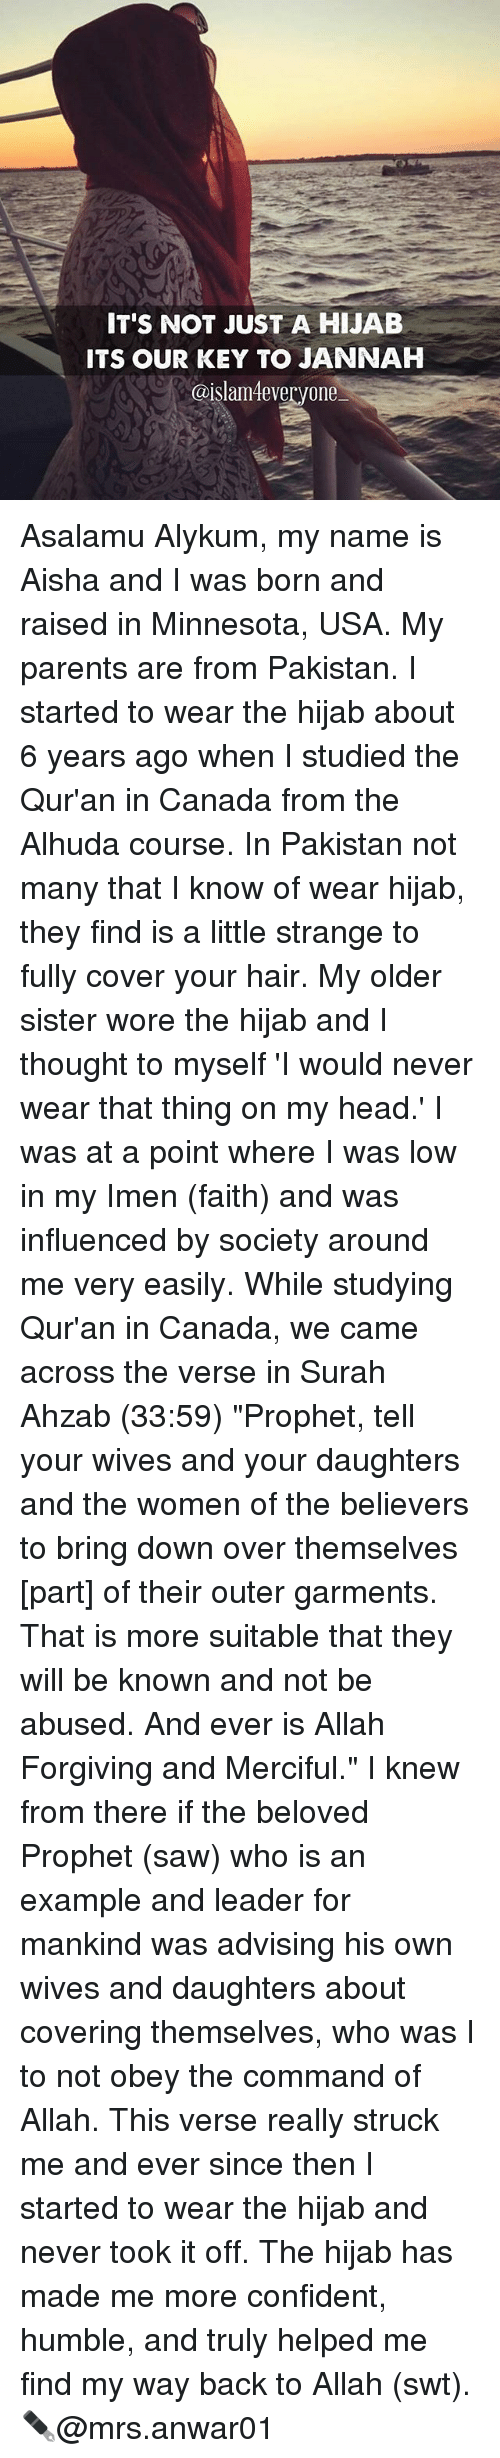 """Memes, 🤖, and Usa: IT'S NOT JUST A HIJAB  ITS OUR KEY TO JANNAH  @islam 4everyone Asalamu Alykum, my name is Aisha and I was born and raised in Minnesota, USA. My parents are from Pakistan. I started to wear the hijab about 6 years ago when I studied the Qur'an in Canada from the Alhuda course. In Pakistan not many that I know of wear hijab, they find is a little strange to fully cover your hair. My older sister wore the hijab and I thought to myself 'I would never wear that thing on my head.' I was at a point where I was low in my Imen (faith) and was influenced by society around me very easily. While studying Qur'an in Canada, we came across the verse in Surah Ahzab (33:59) """"Prophet, tell your wives and your daughters and the women of the believers to bring down over themselves [part] of their outer garments. That is more suitable that they will be known and not be abused. And ever is Allah Forgiving and Merciful."""" I knew from there if the beloved Prophet (saw) who is an example and leader for mankind was advising his own wives and daughters about covering themselves, who was I to not obey the command of Allah. This verse really struck me and ever since then I started to wear the hijab and never took it off. The hijab has made me more confident, humble, and truly helped me find my way back to Allah (swt). ✒@mrs.anwar01"""